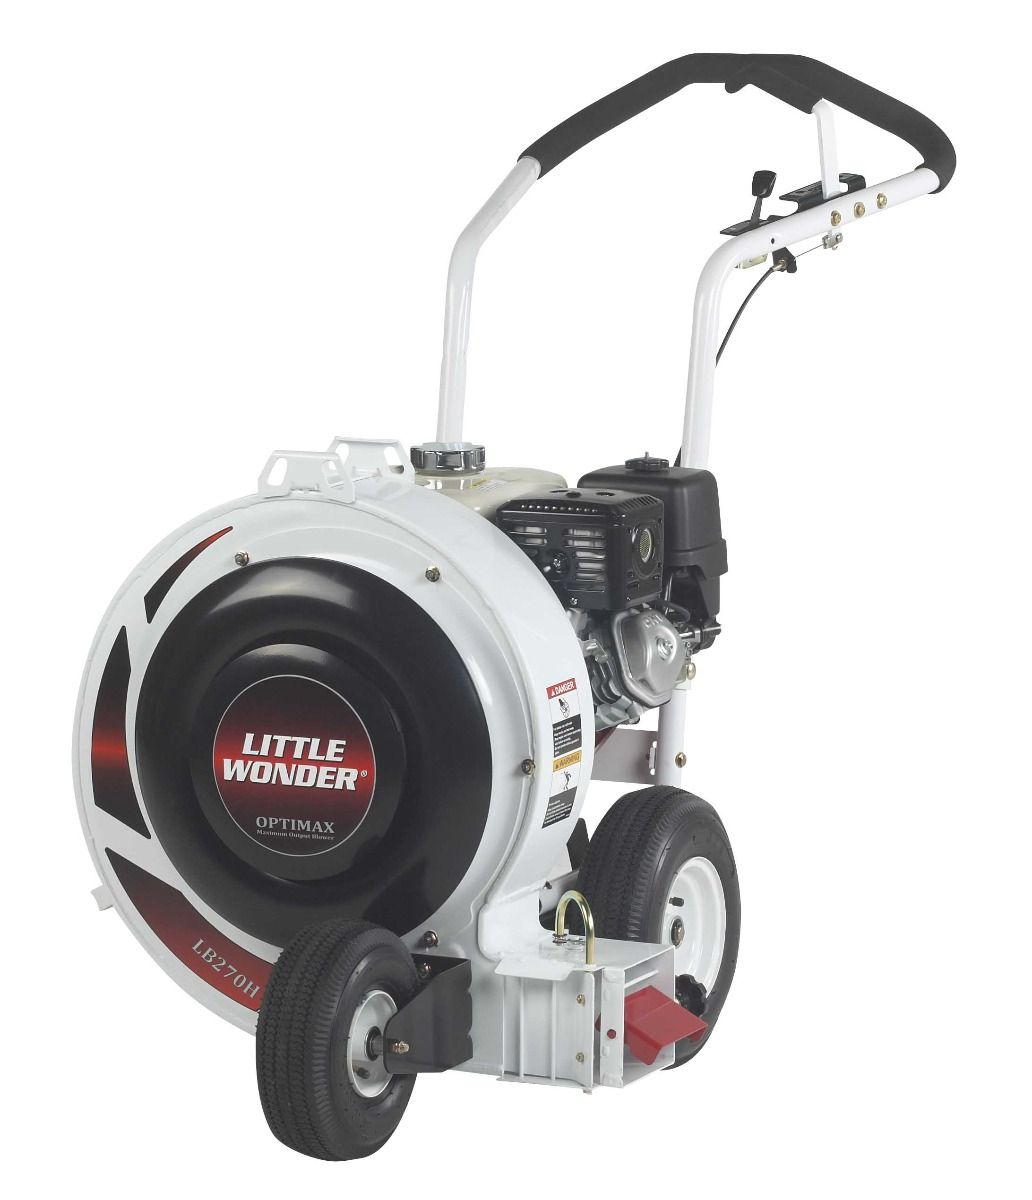 Fully-featured Push Little Wonder Blower LB270H